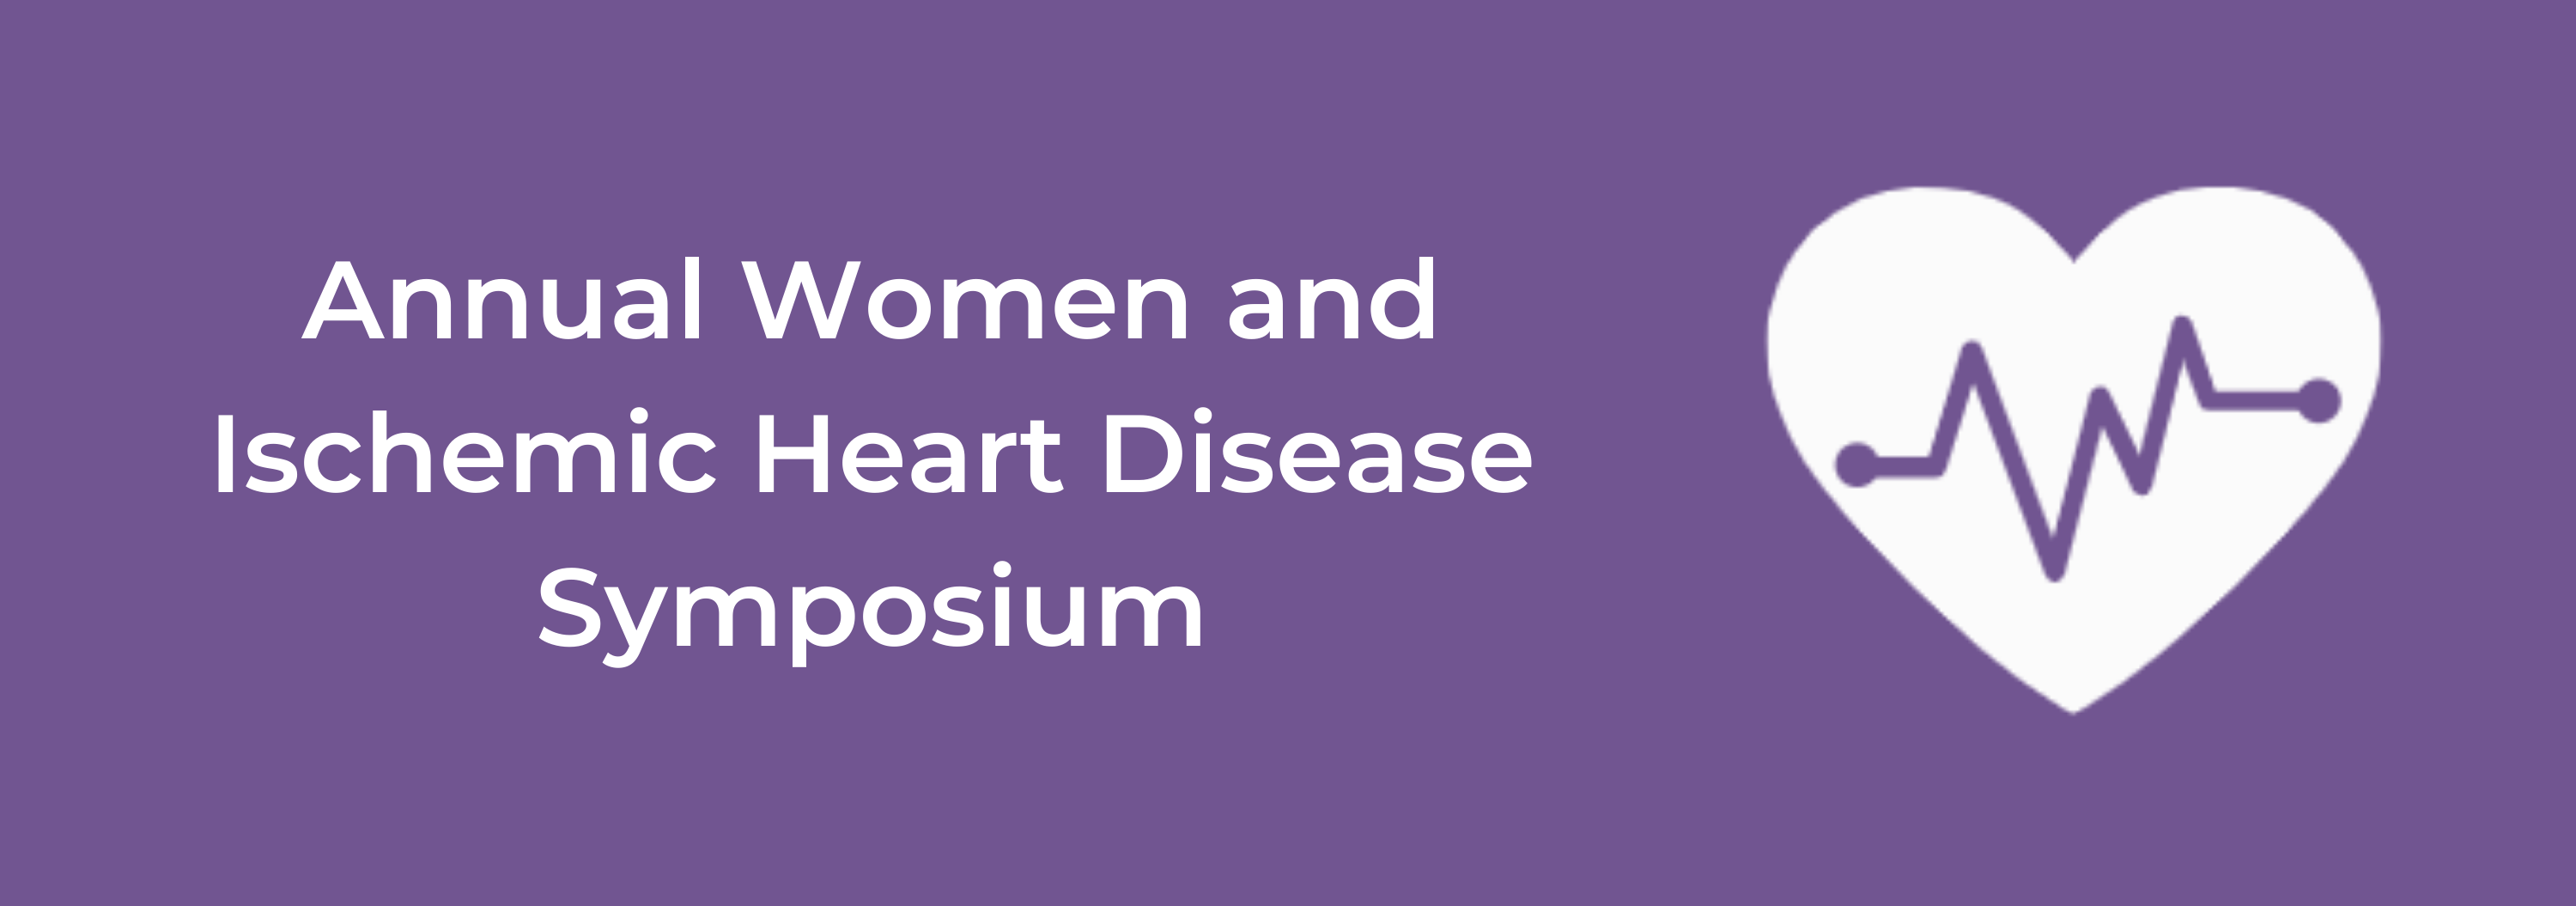 14th Annual Women and Ischemic Heart Disease Symposium (Rescheduled) Banner